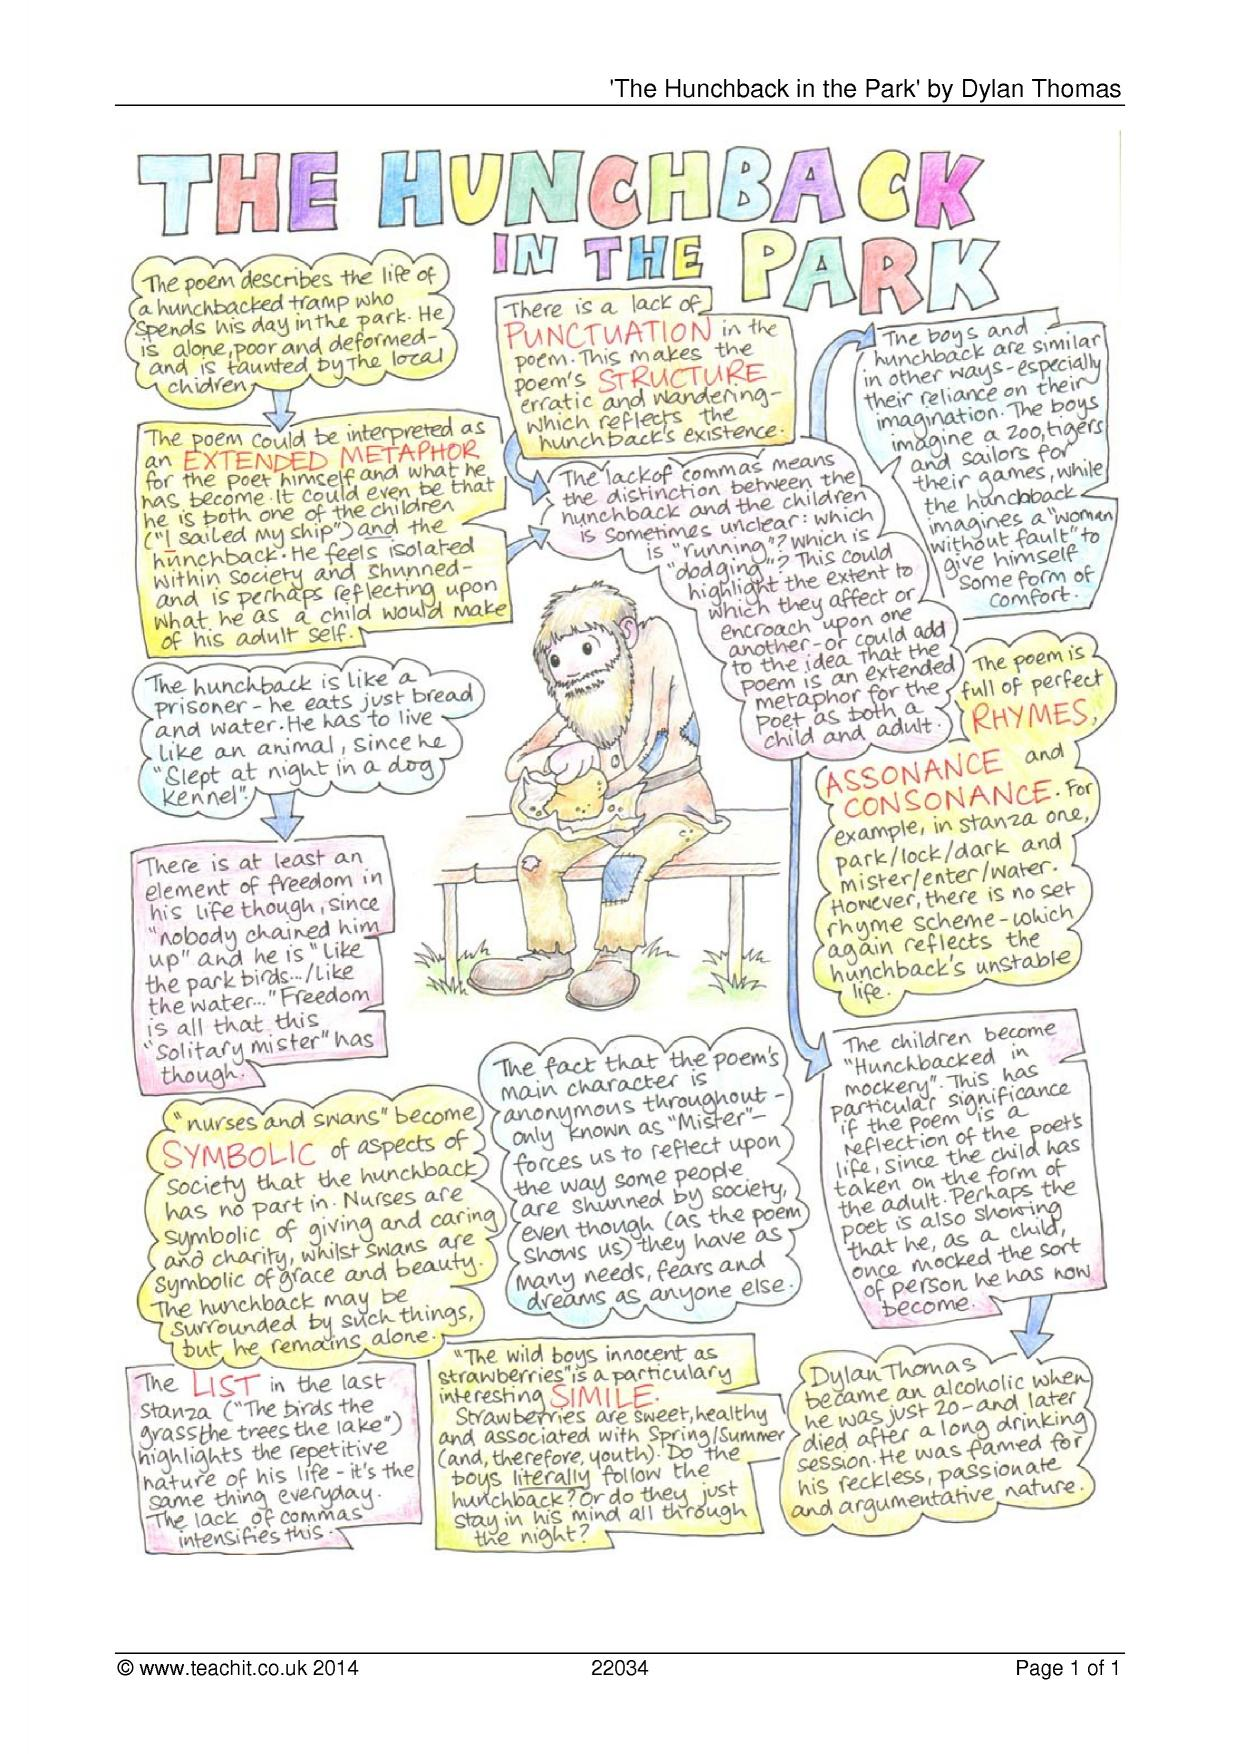 hunchback analysis essay The hunchback in the park english literature essay by dylan thomas the hunchback was written by dylan thomas it is a poem that makes me feel pity, as it is about a disabled, homeless man.